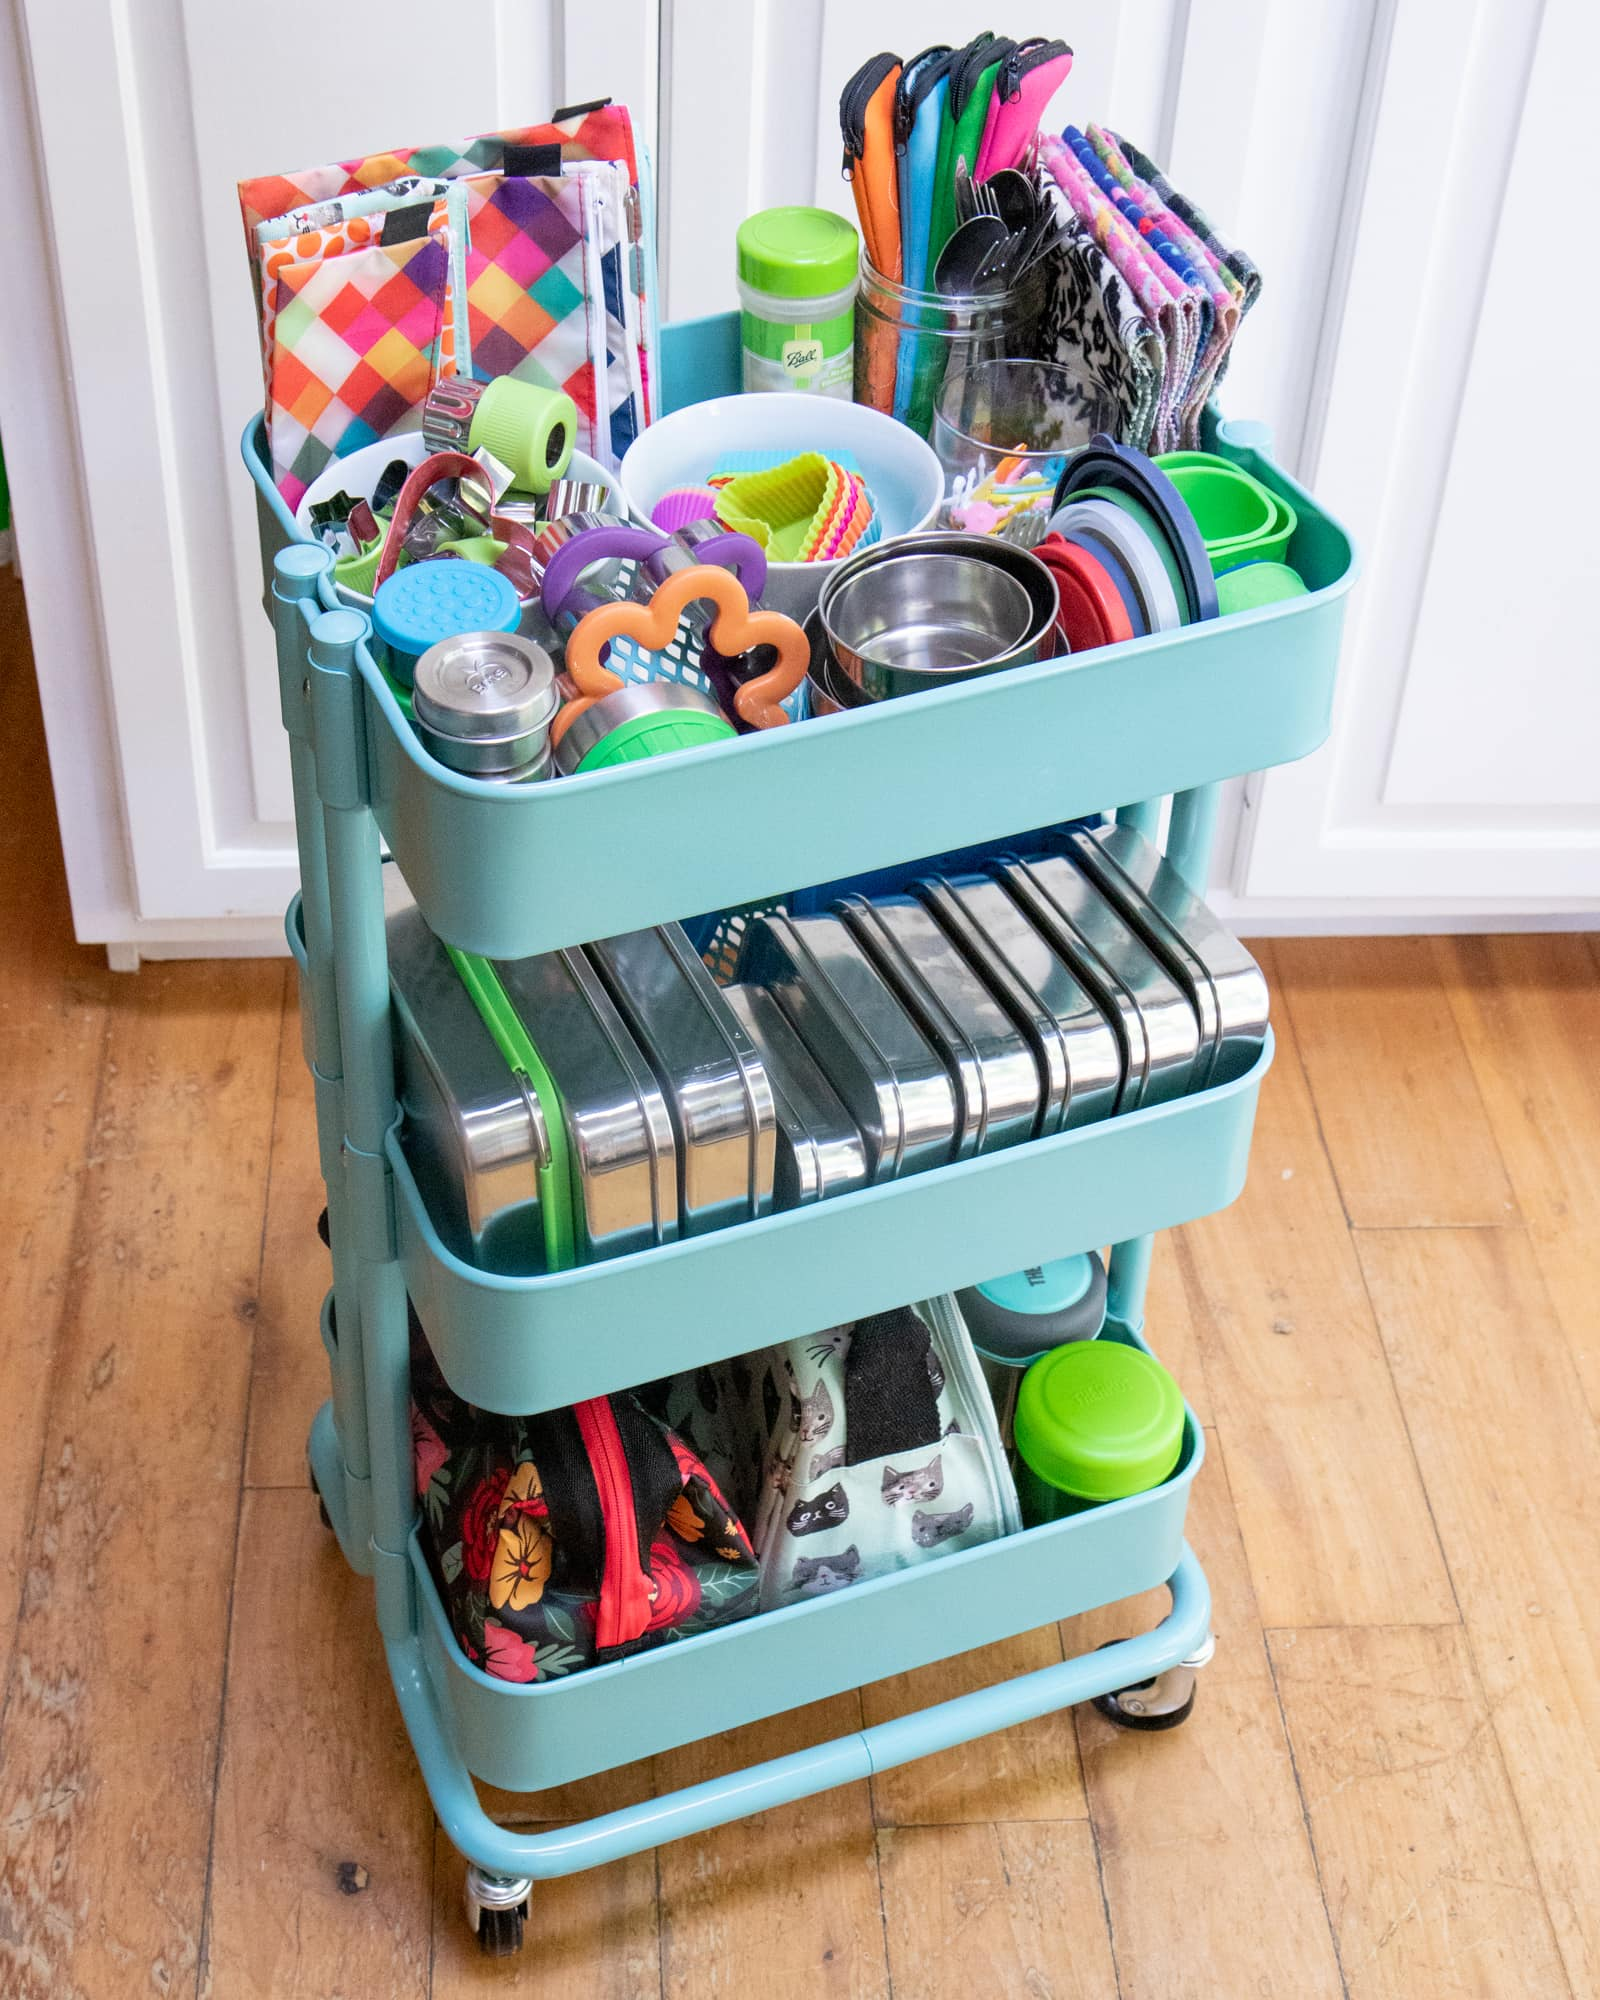 Rolling utility cart filled with tools and materials for packing zero-waste lunches.